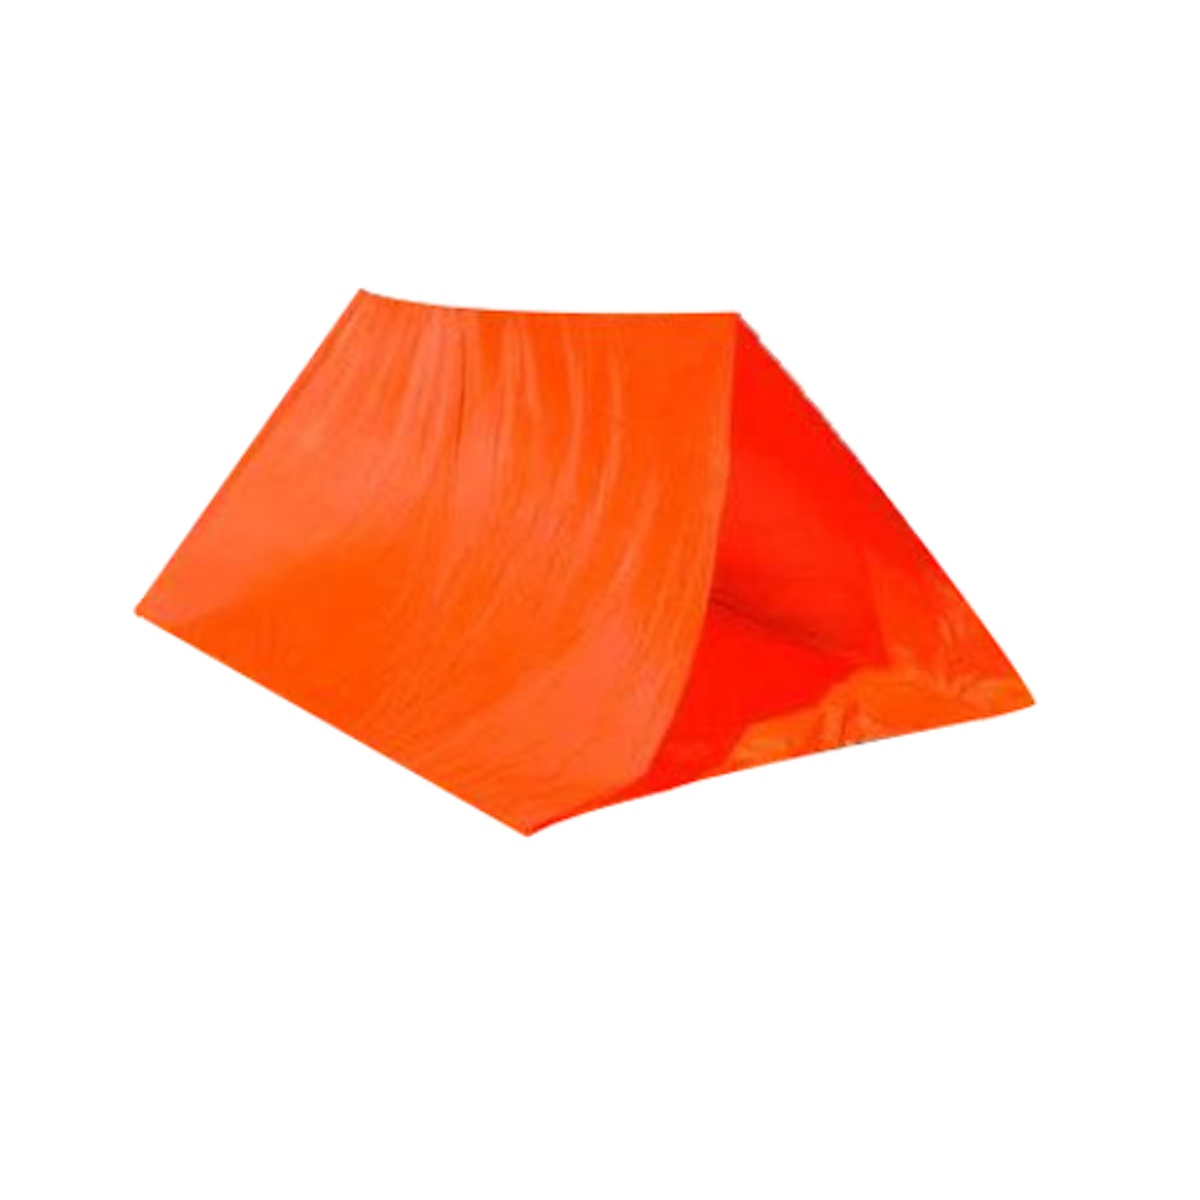 Emergency Outdoor Waterproof Pup Tube Tent Camping Hiking Gear Survival Shelter by